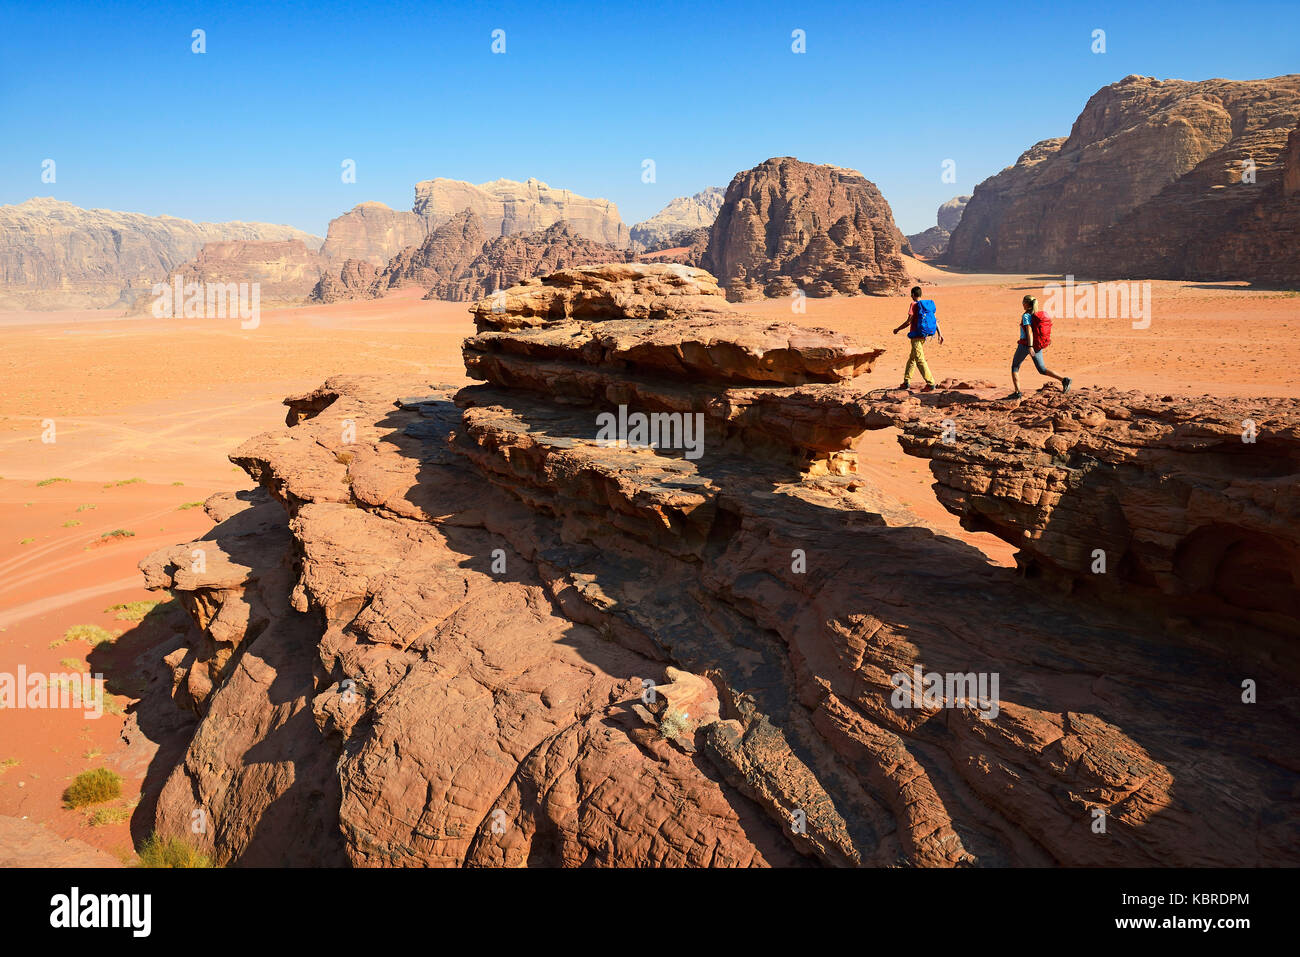 Couple hiking at Rock Arch, Al Borg Alsagheer, Wadi Rum, Jordan - Stock Image